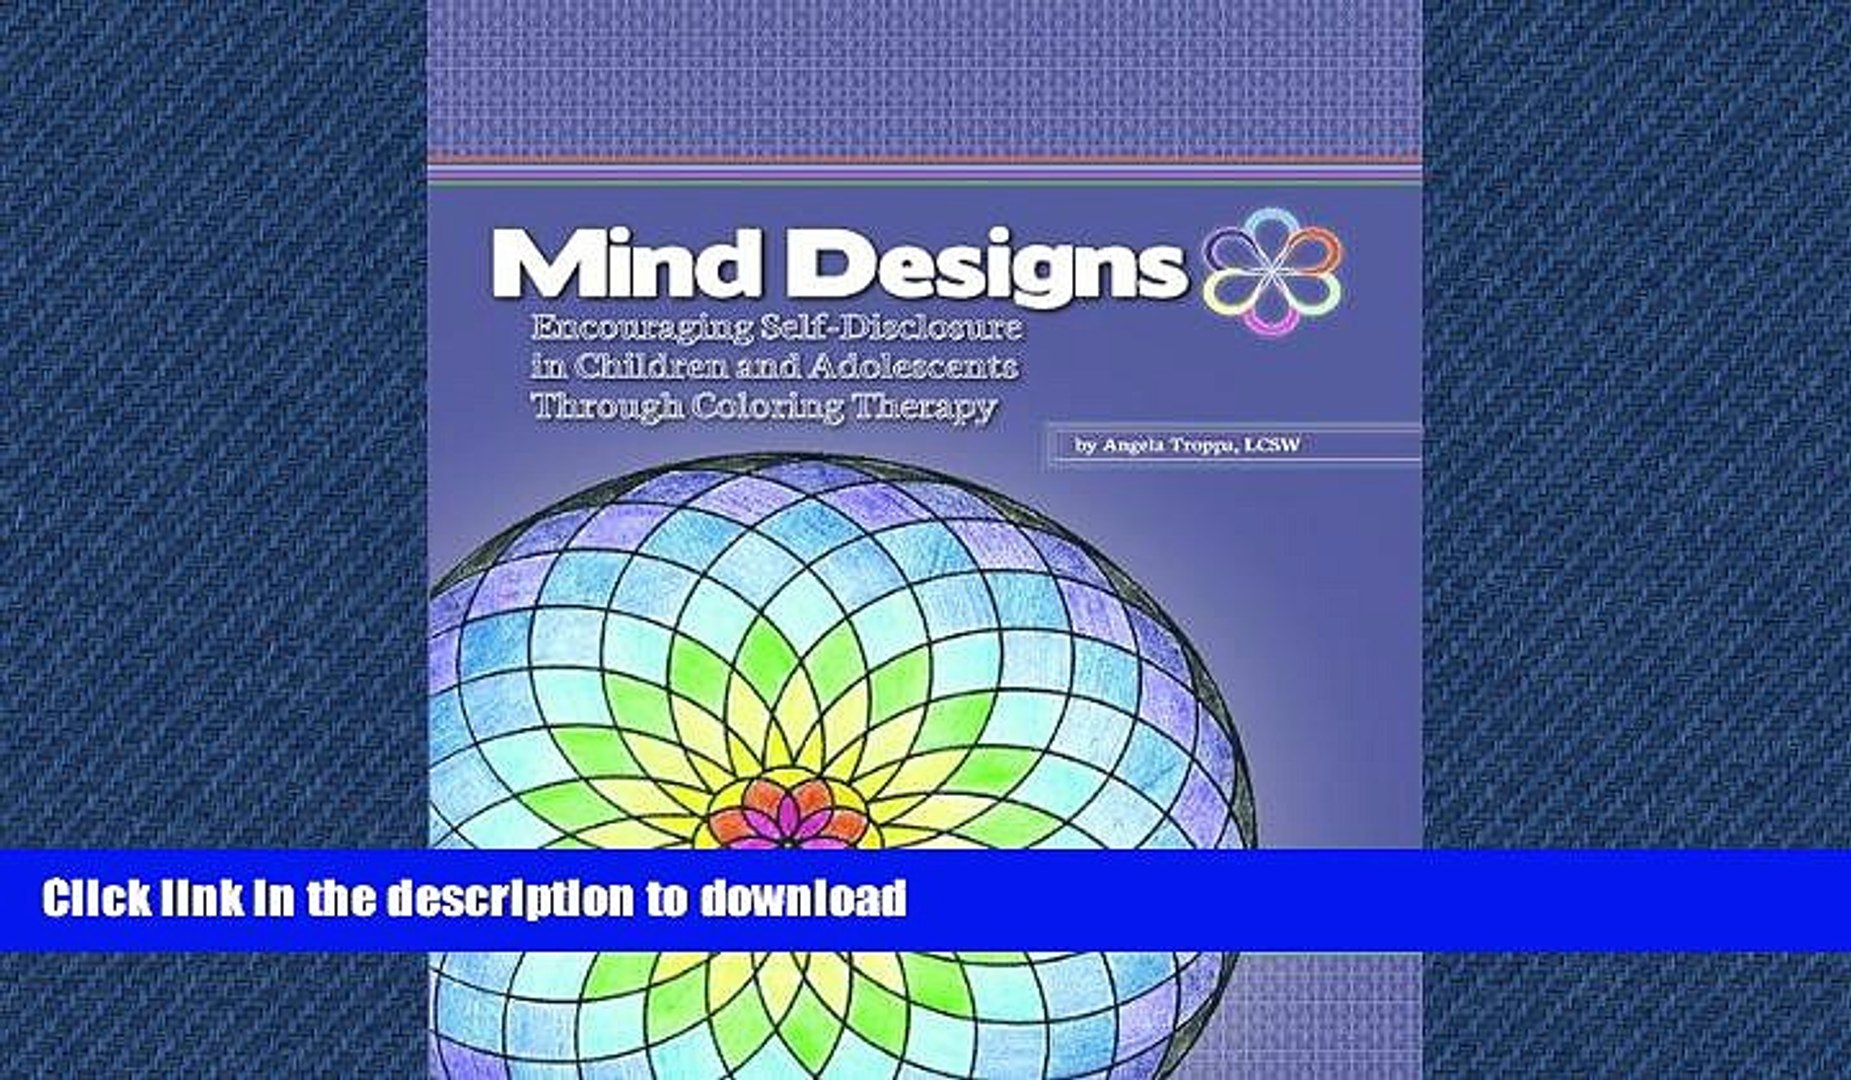 READ  Mind Designs: Encouraging Self-Disclosure in Children and Adolescents Through Coloring